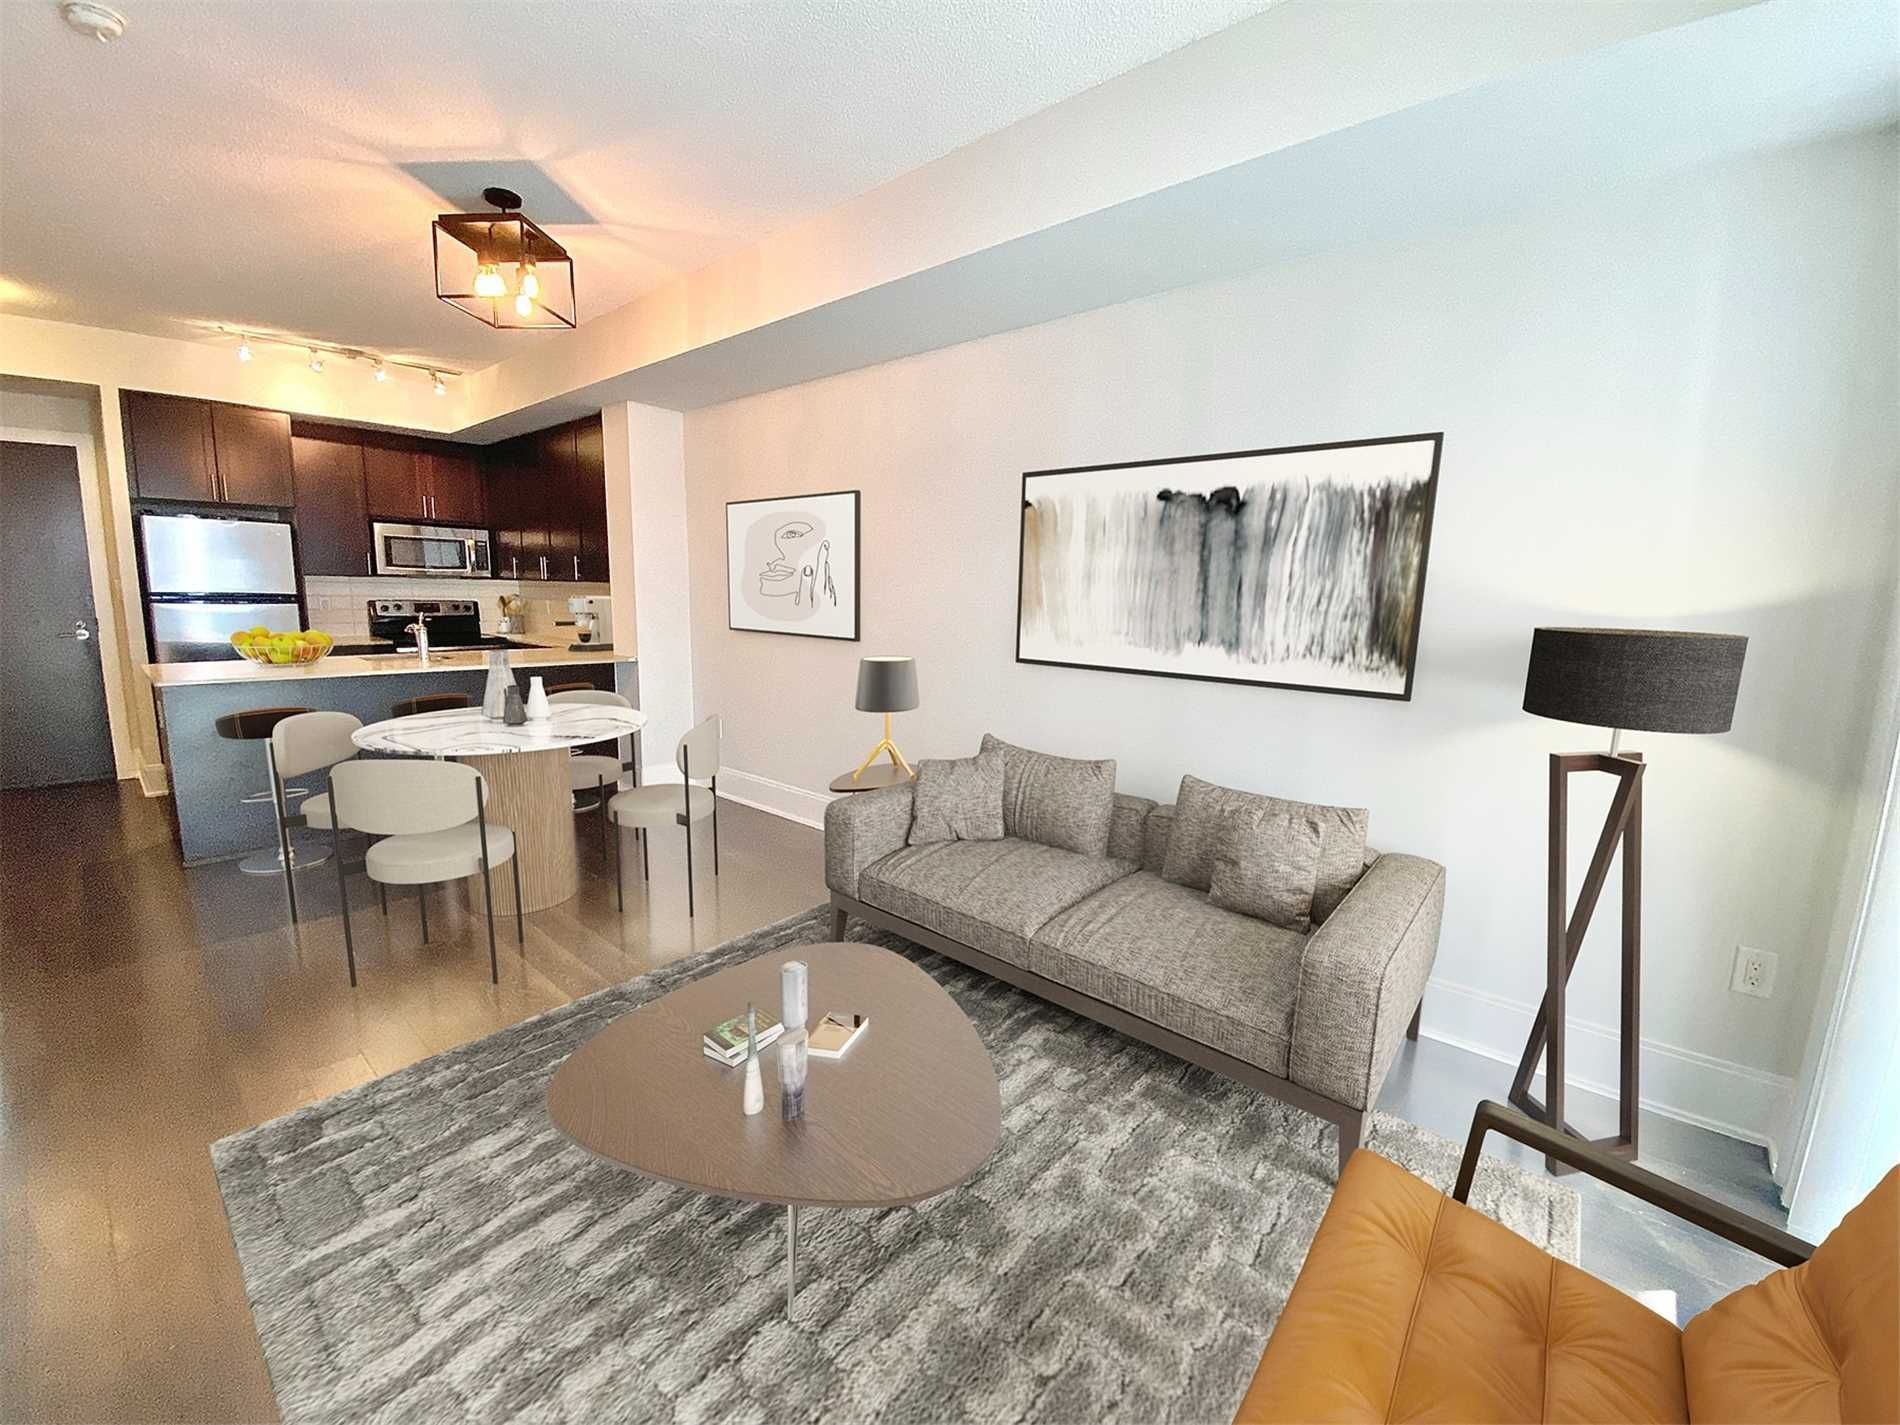 560 Front St W, unit 406 for sale in Toronto - image #1